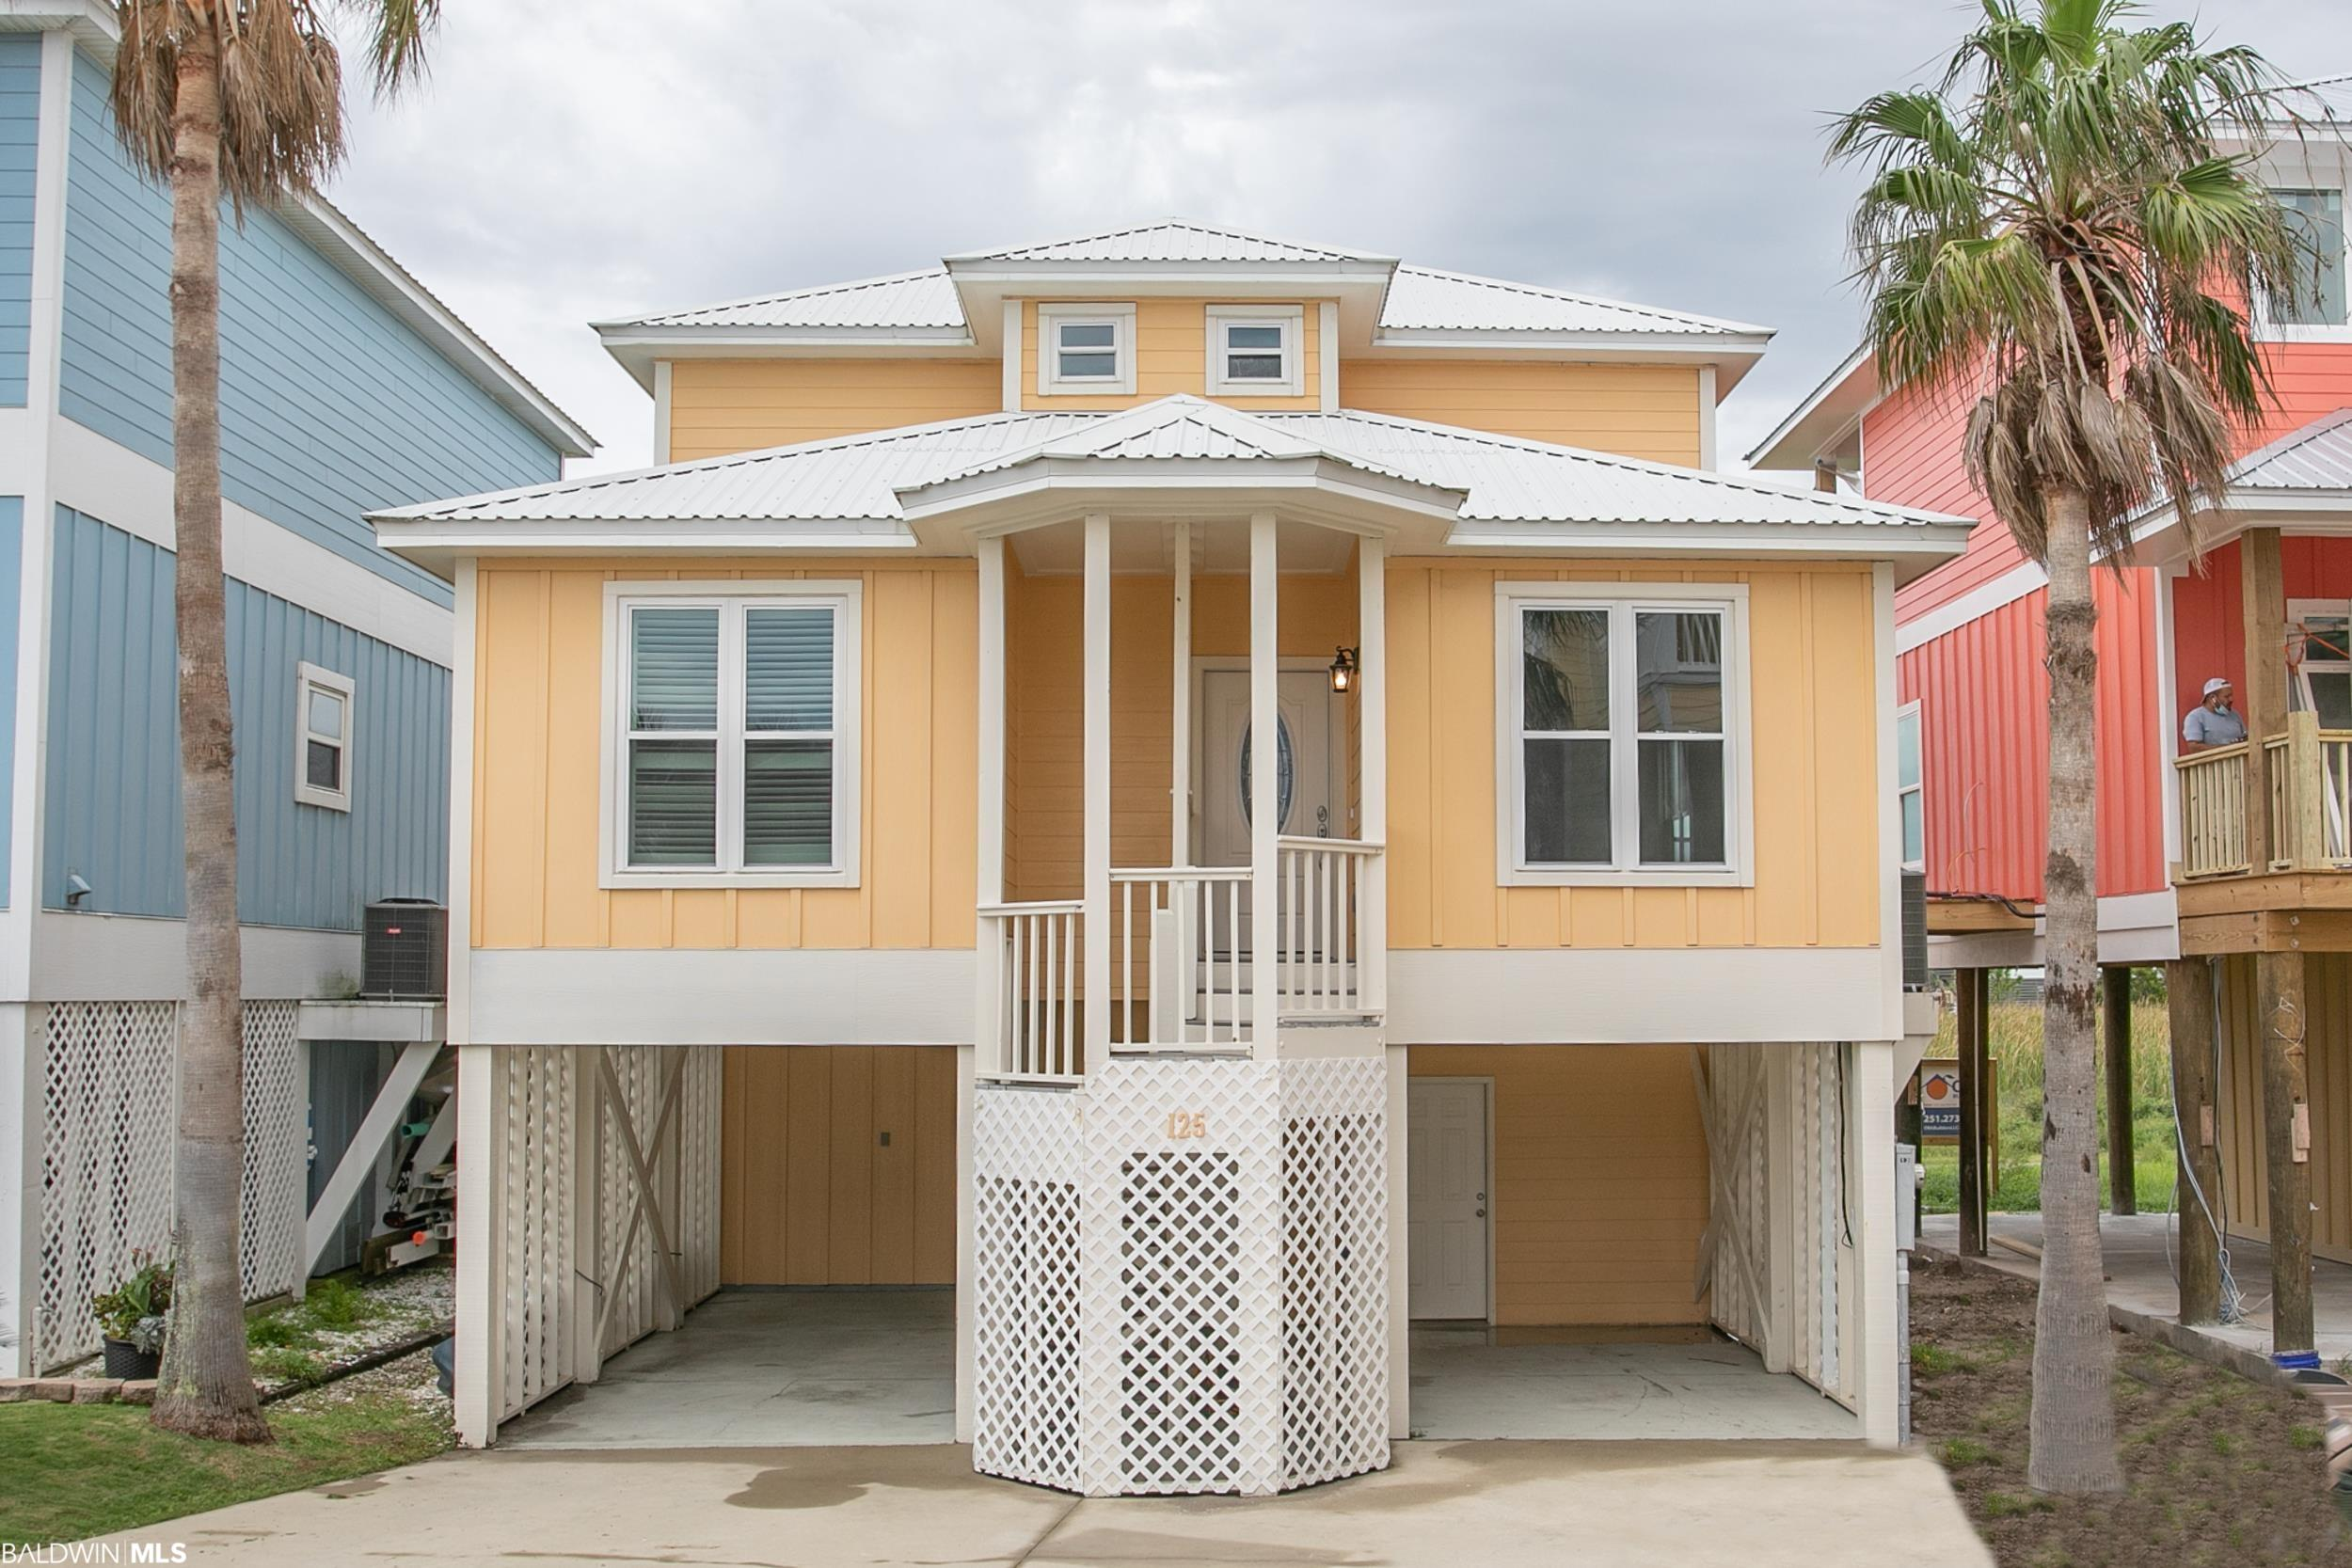 Here is your chance to own a virtually new and beautiful 4BD/2.5BA, 1,762 SF beach home in desirable Blue Lagoon subdivision! This home enjoys views of Little Lagoon from the rear balconies with community amenities to include a Gunite swimming pool, gazebo covered picnic area, and access to a fishing pier and brand-new walking pier over the marsh. Beach access is provided via a short walk either east to 13th Street for public beach access, or west, to Little Lagoon Pass Bridge. This home has undergone major renovations due to Hurricane Sally including new HVAC, laminate and tile flooring, ceiling fans and light fixtures, fresh interior paint, new trim and doors, hurricane rated sliding glass doors, central vacuum system, and more. The kitchen is open to the dining area and living room and will feature all new cabinets and granite countertops. Stainless steel appliances are provided to include a refrigerator and wine cooler. The spacious master suite includes a walk-in closet and double vanity, granite countertops, large tiled stand up shower, and plantation shutters in the bathroom. Approximately five years ago the exterior was replaced with hardiboard, all new windows installed, and all metal roof screws/grommets replaced. The bottom level includes approximately 325 square foot of heated/cooled recreational space and there is also a large storage room for all of your beach toys. The new washer/dryer as well as the TV in the bonus area will convey with the sale.